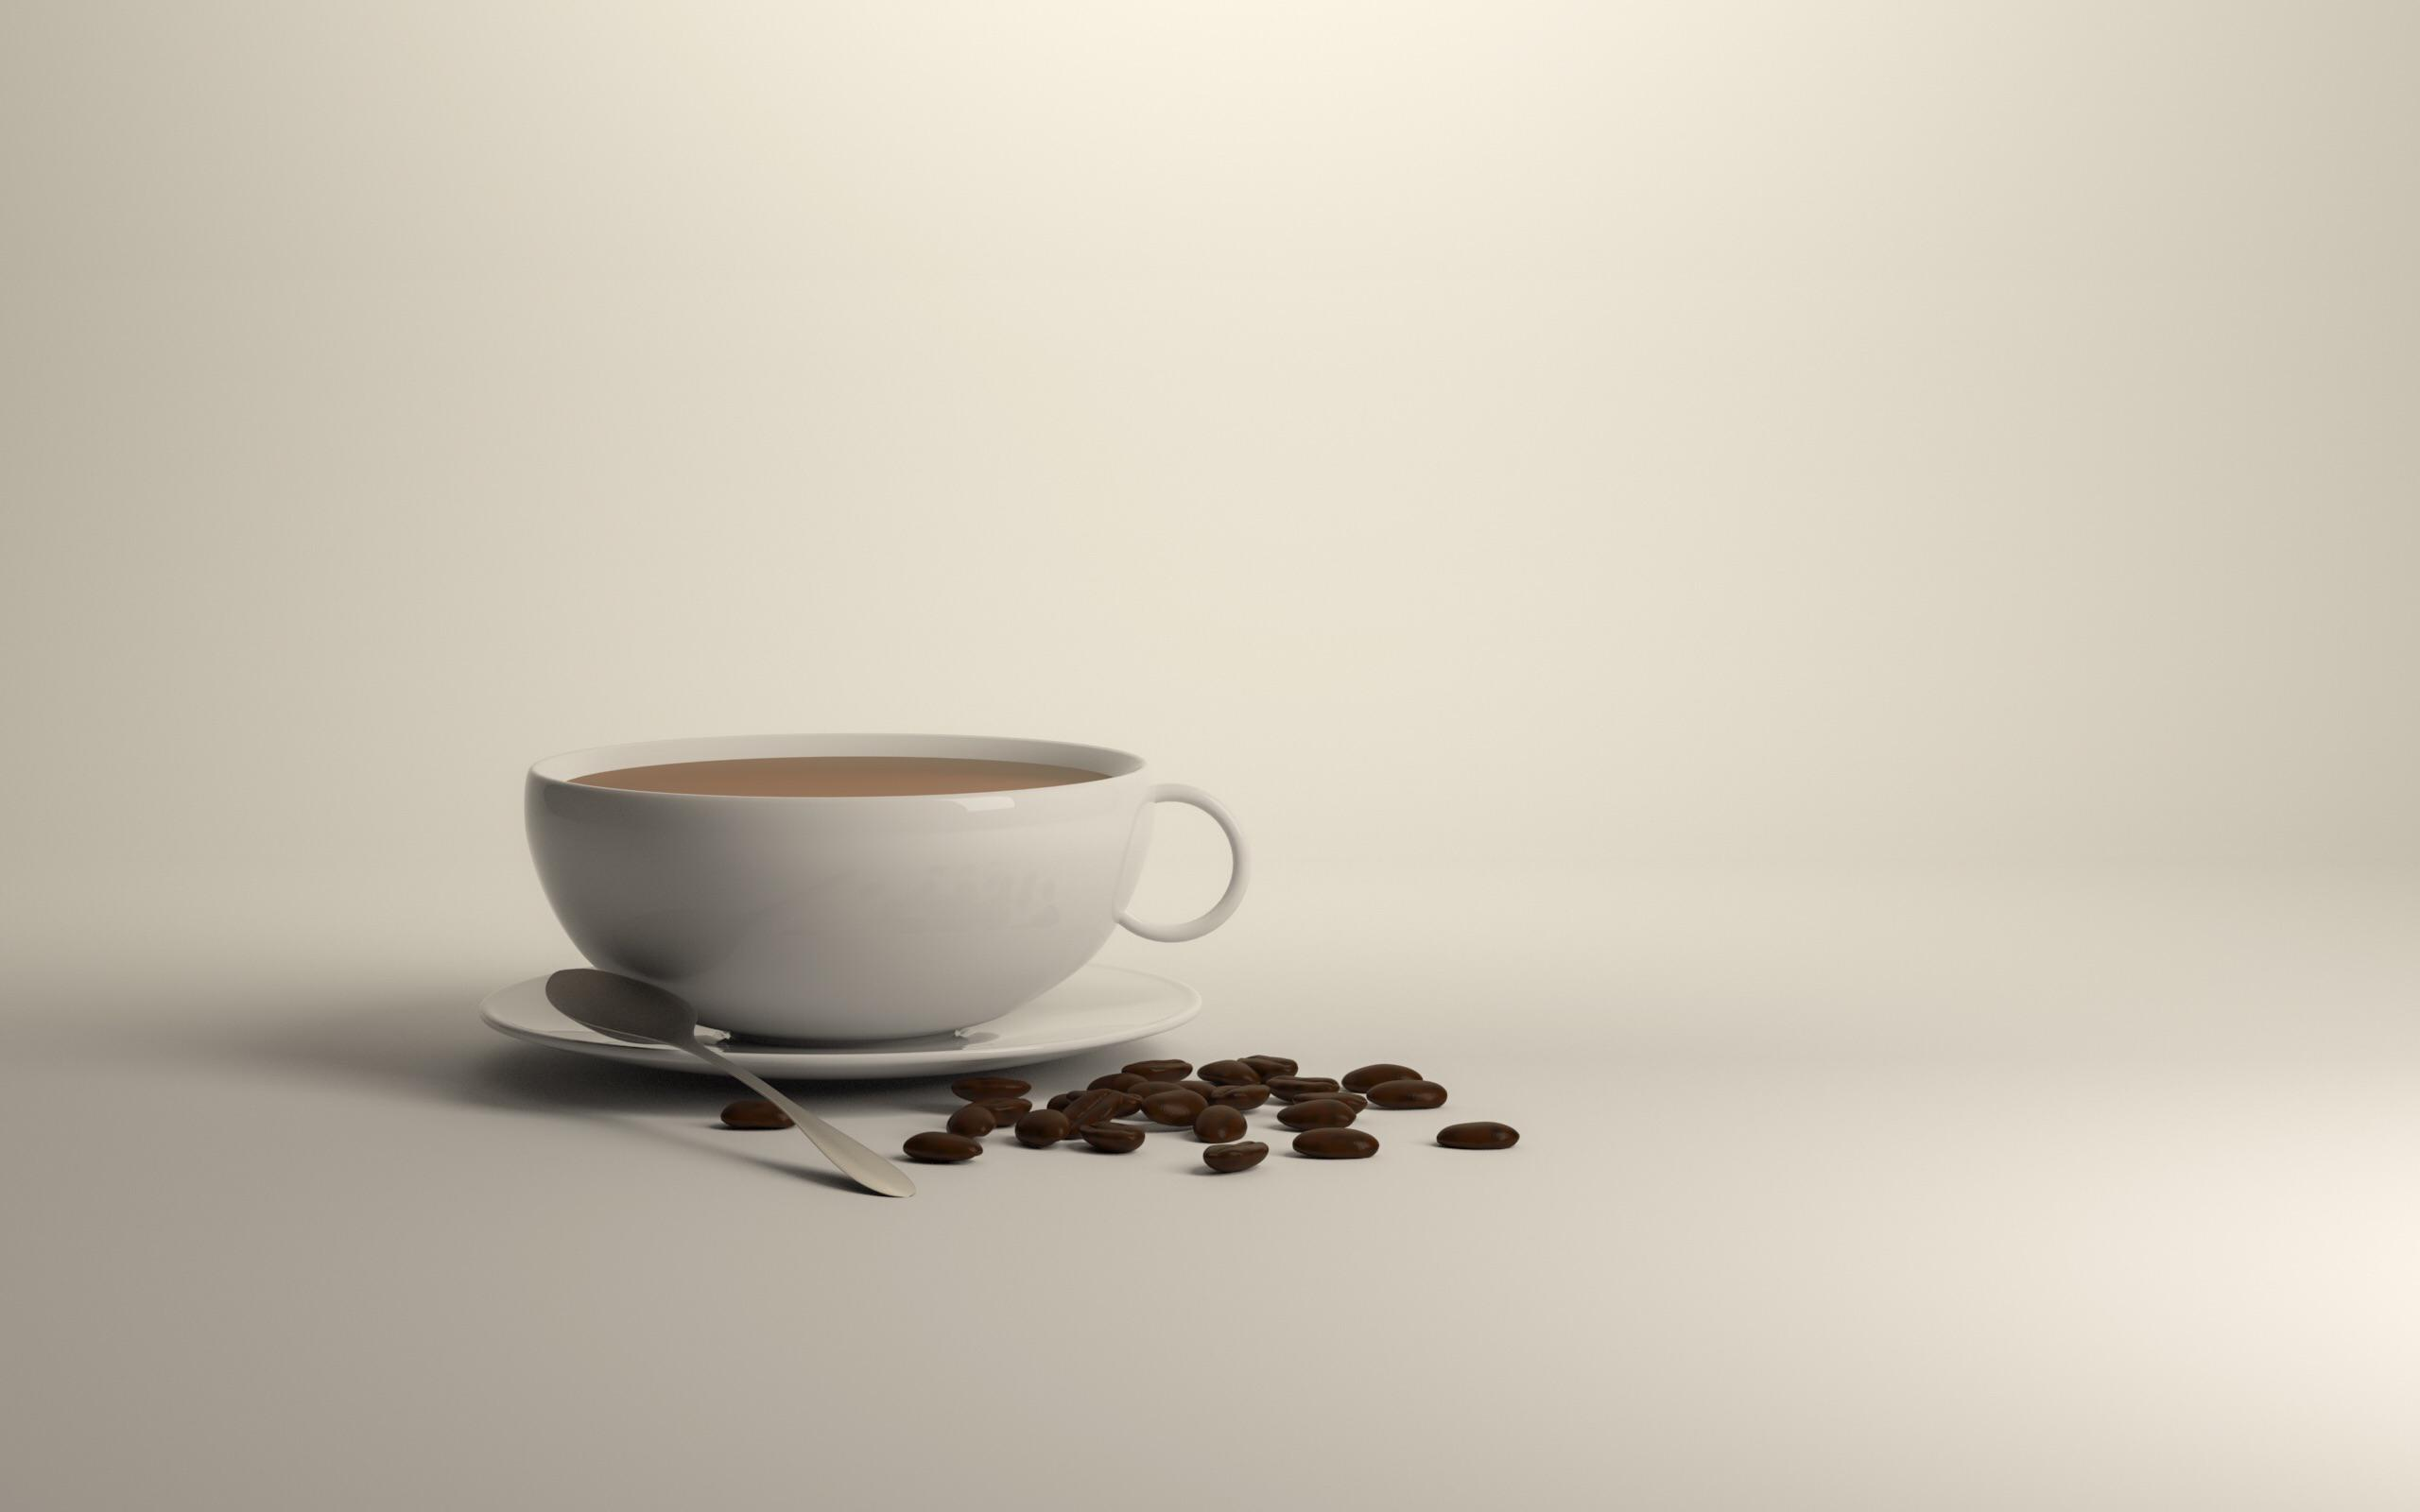 Coffee 4k Wallpapers For Your Desktop Or Mobile Screen Free